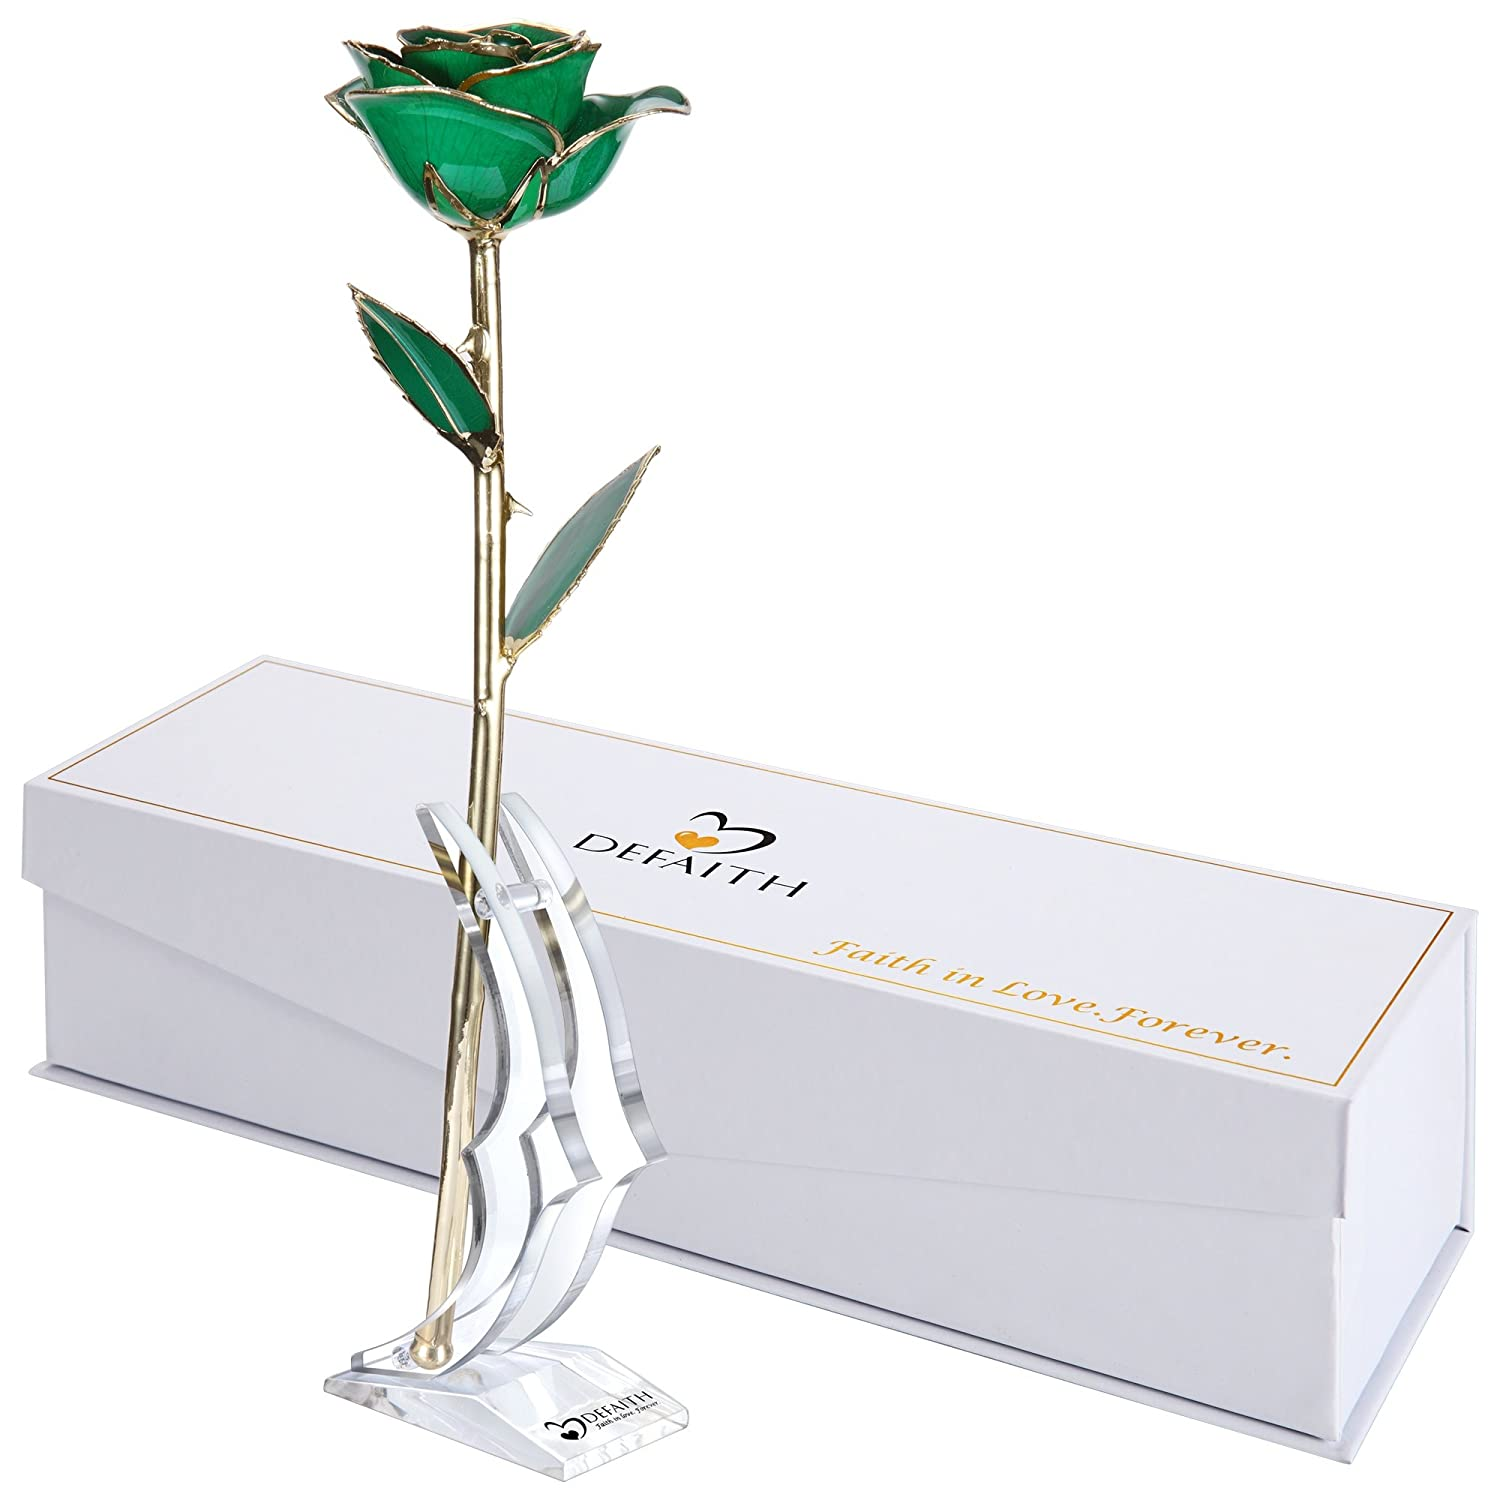 (K.deep Green) - DeFaith Green 24K Gold Rose, Unique Anniversary Gifts for Mother Wife Girlfriend Her Women, Made from Real Rose Flower with Stand B014IZ4CZG K.Deep Green